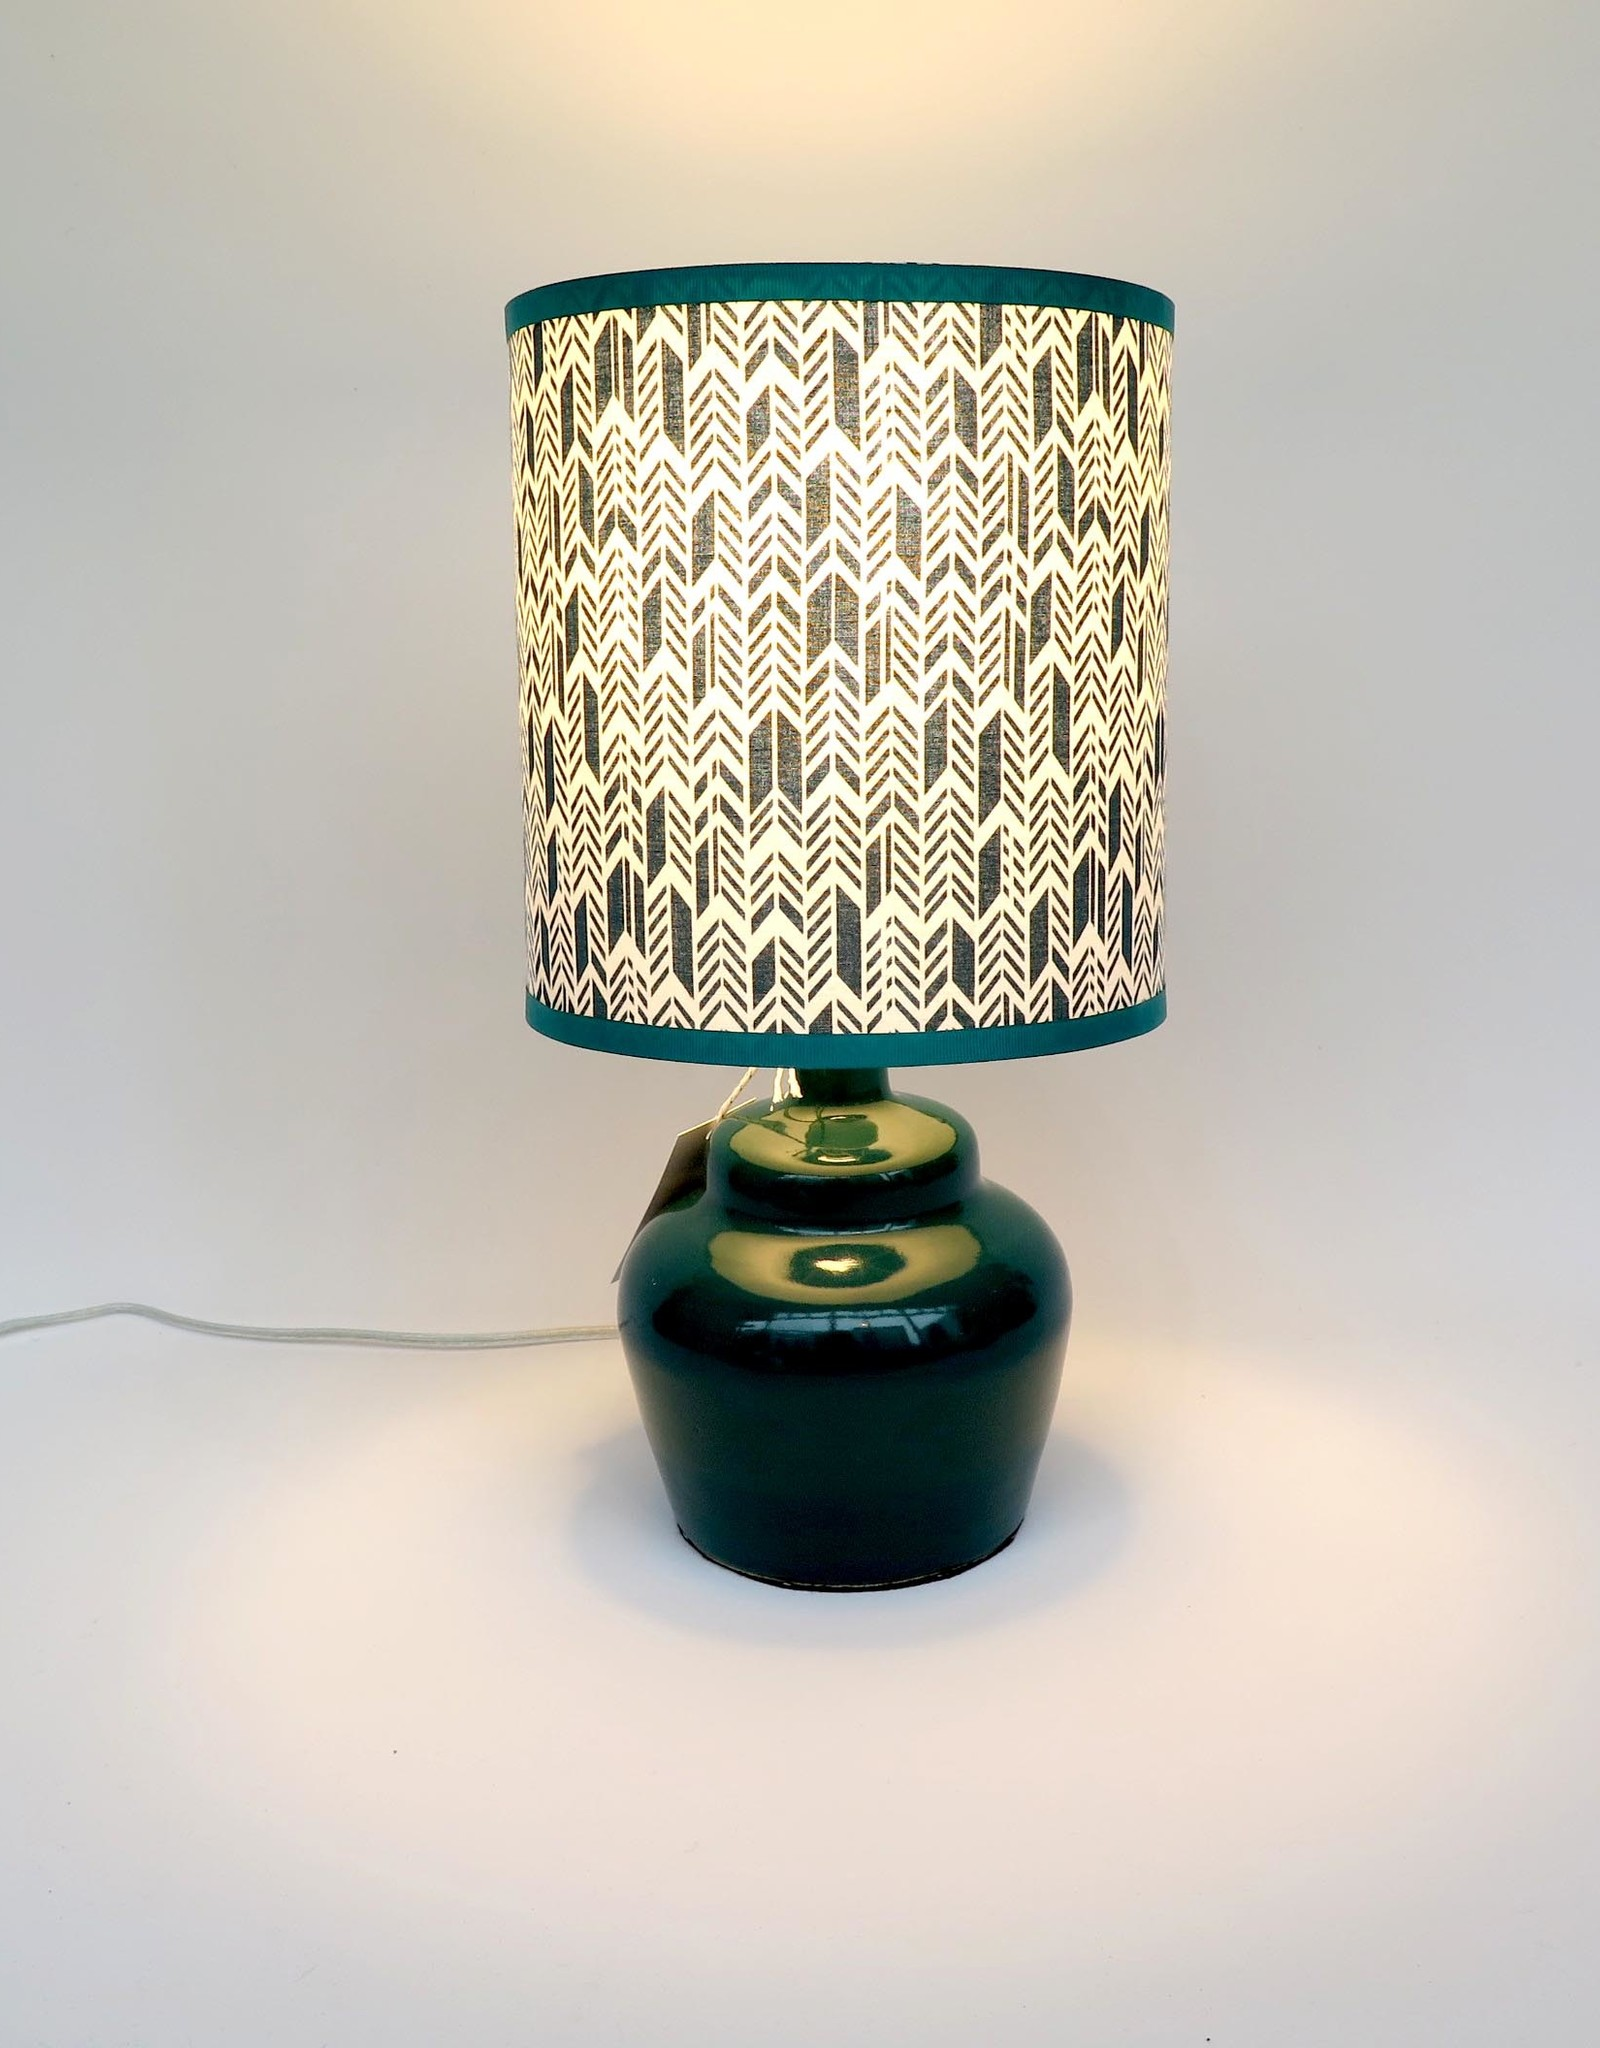 Small plump teal lamp by Ronda Ruby ceramics